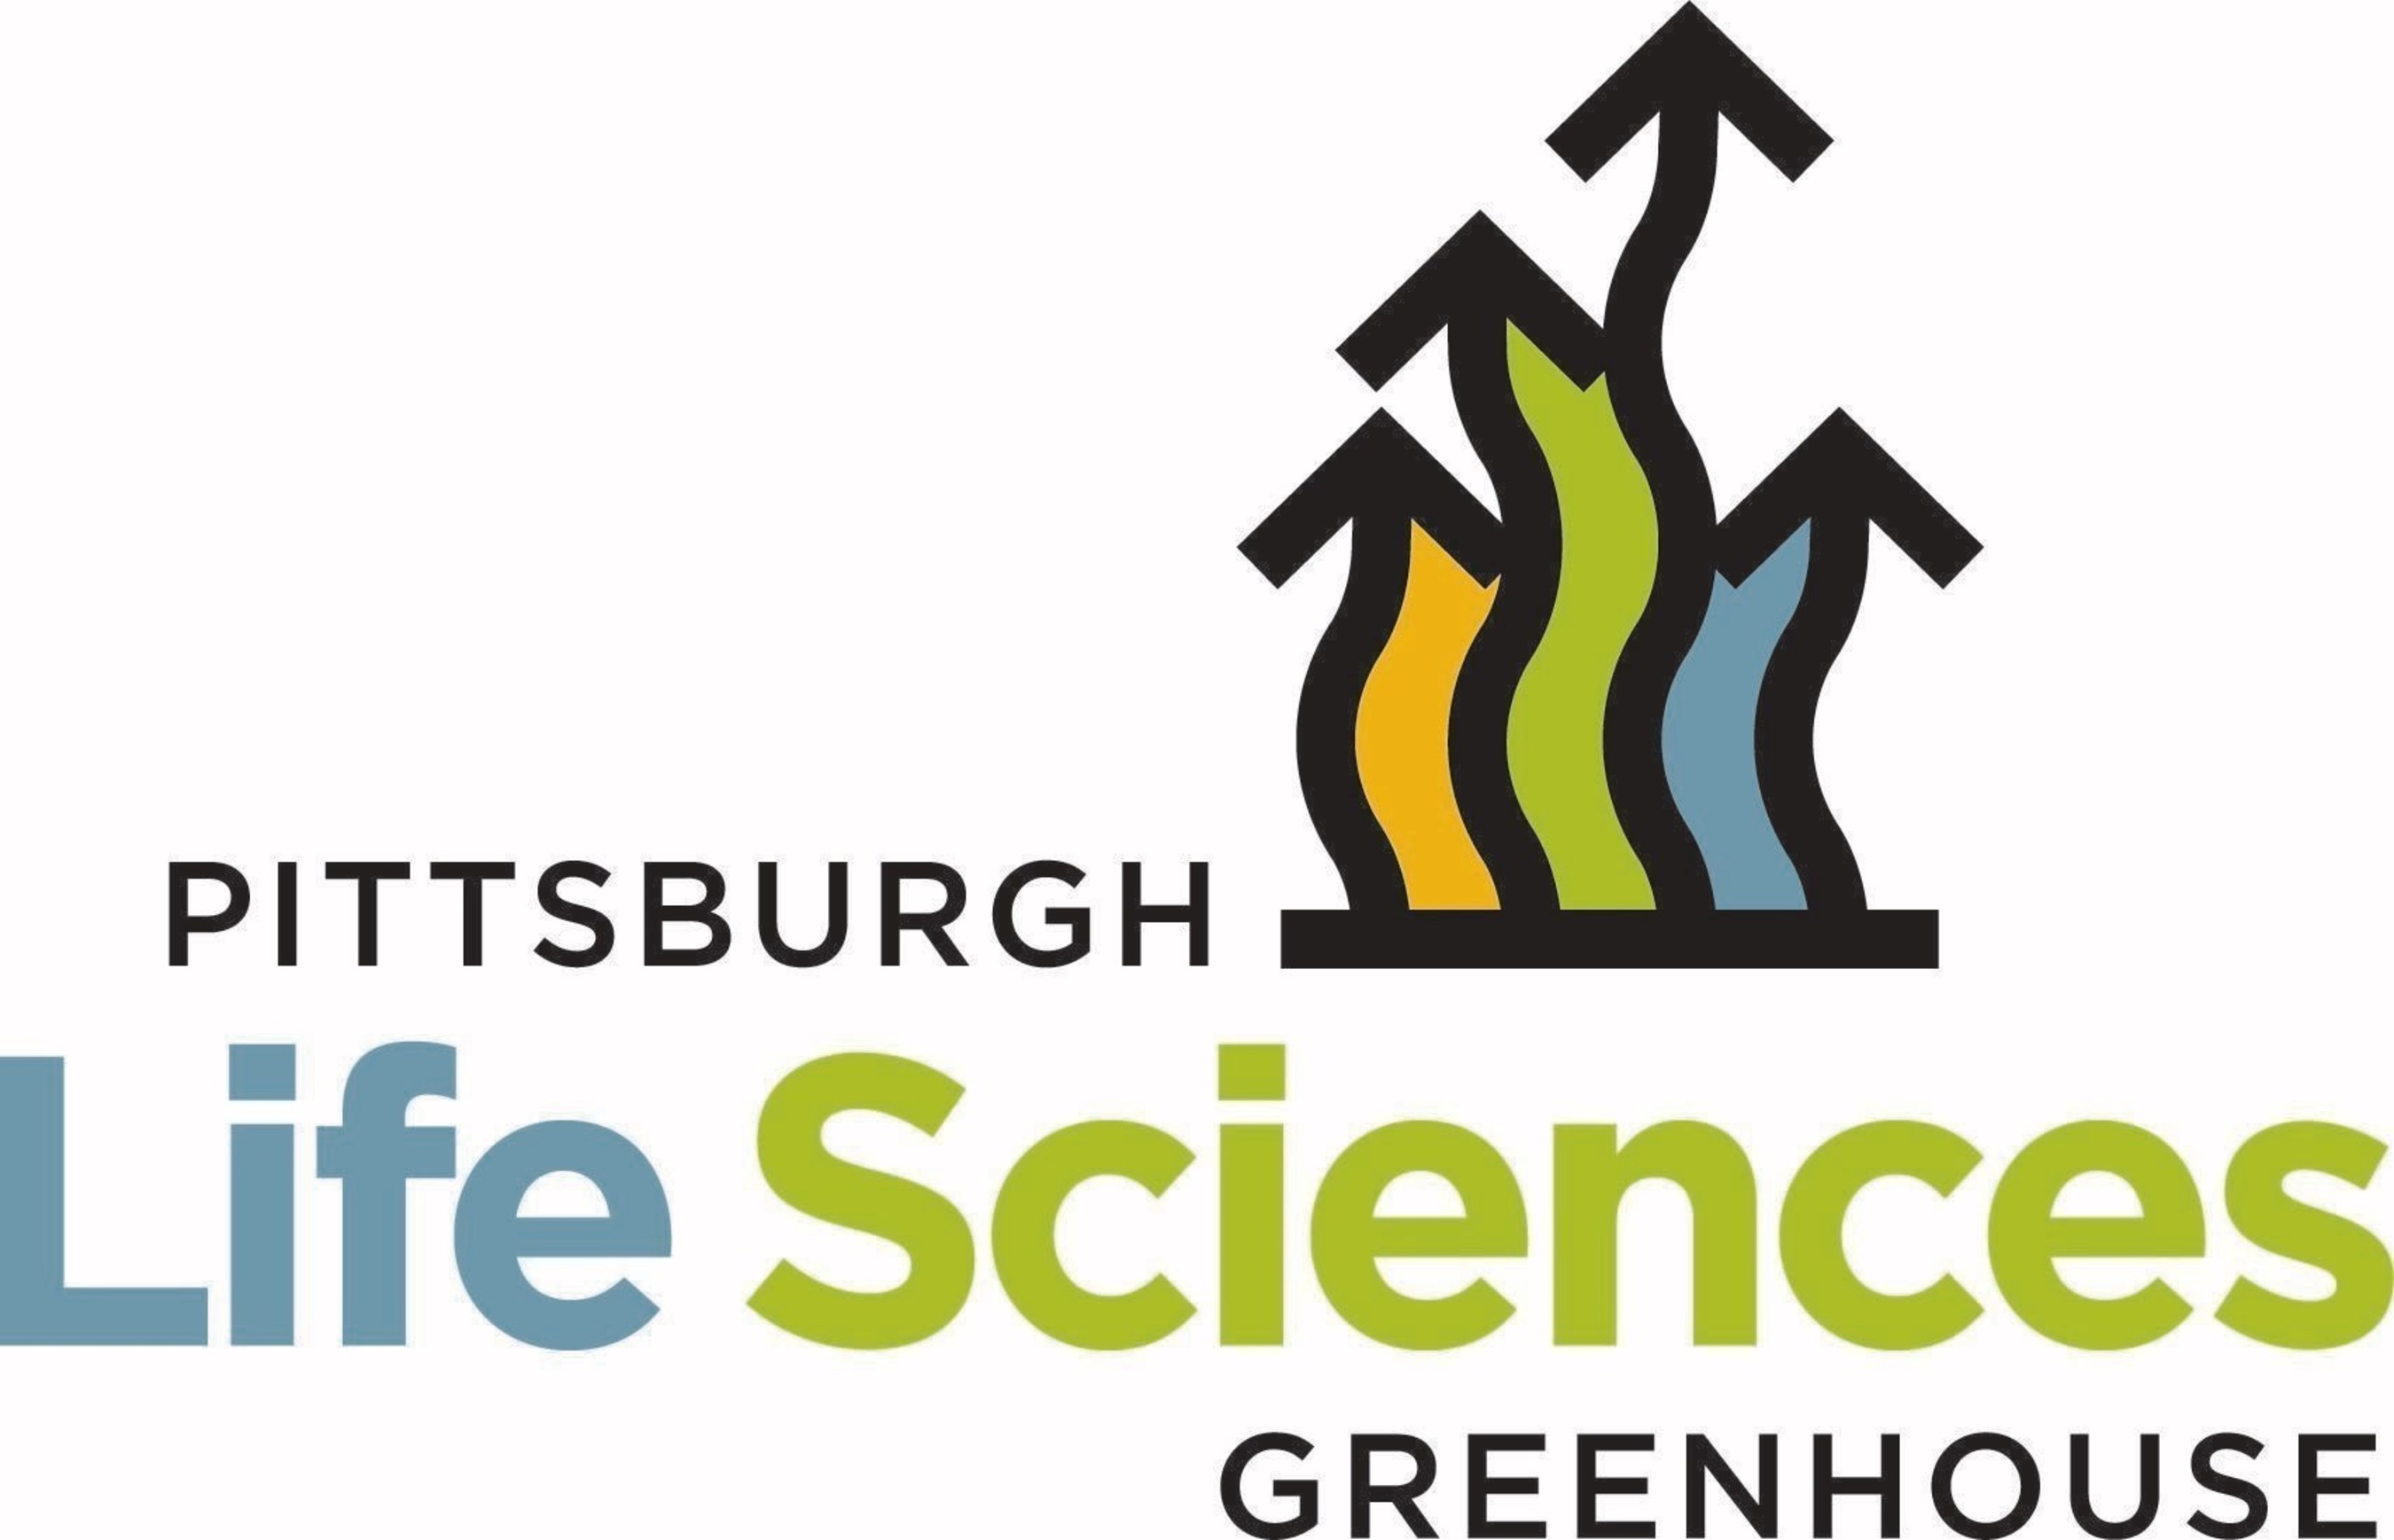 Pittsburgh Life Sciences Greenhouse Logo